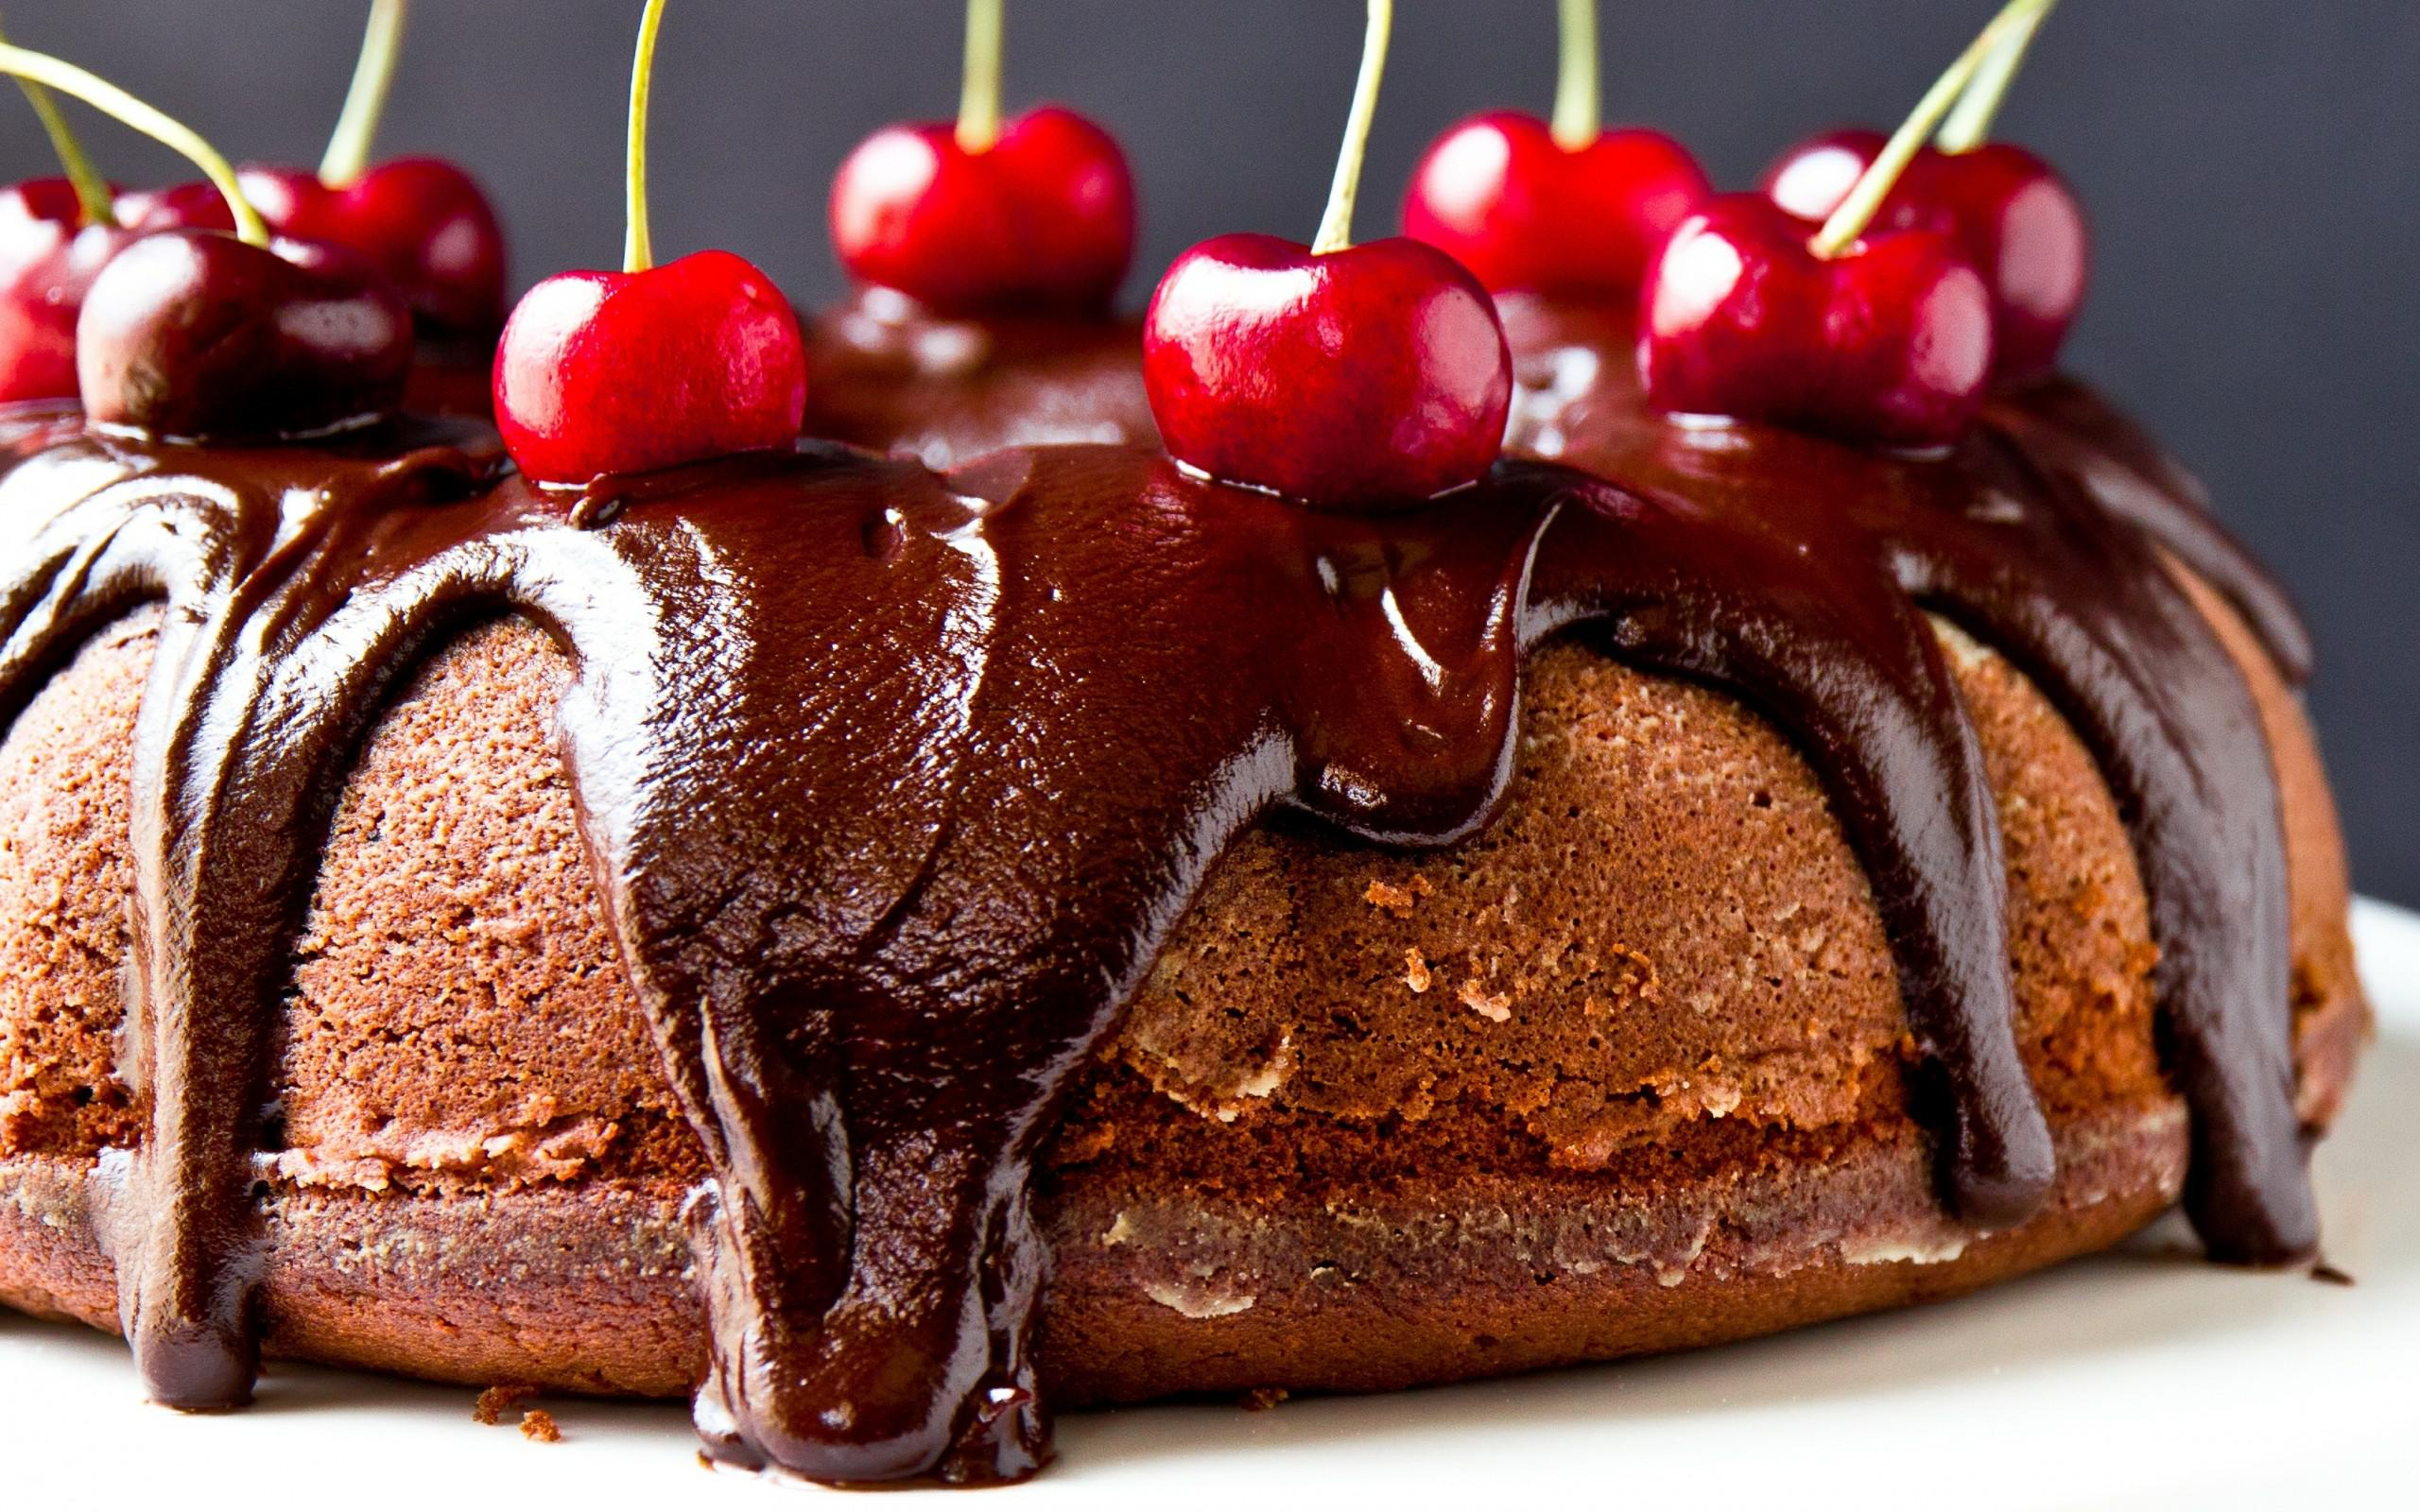 Ice Cream Cake Hd Images : Chocolate Cake Wallpaper - WallpaperSafari